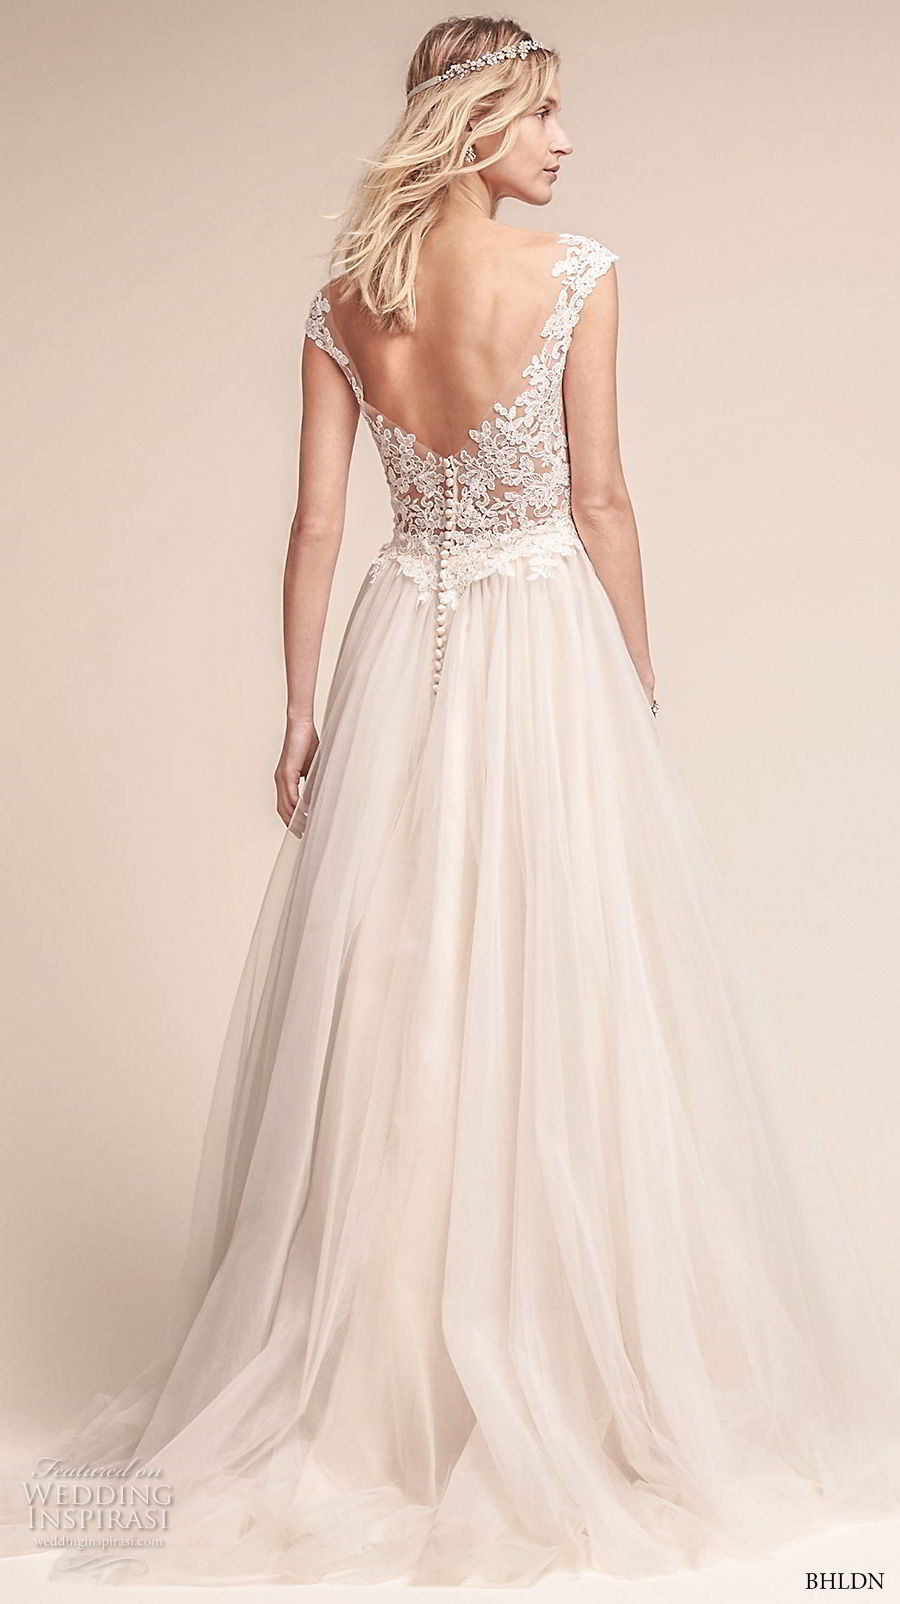 bhldn fall 2017  americana bridal cap sleeves illusion bateau neck sweetheart neckline heavily embellished bodice tulle skirt romantic a  line wedding dress open scoop back sweep train (carly) bv